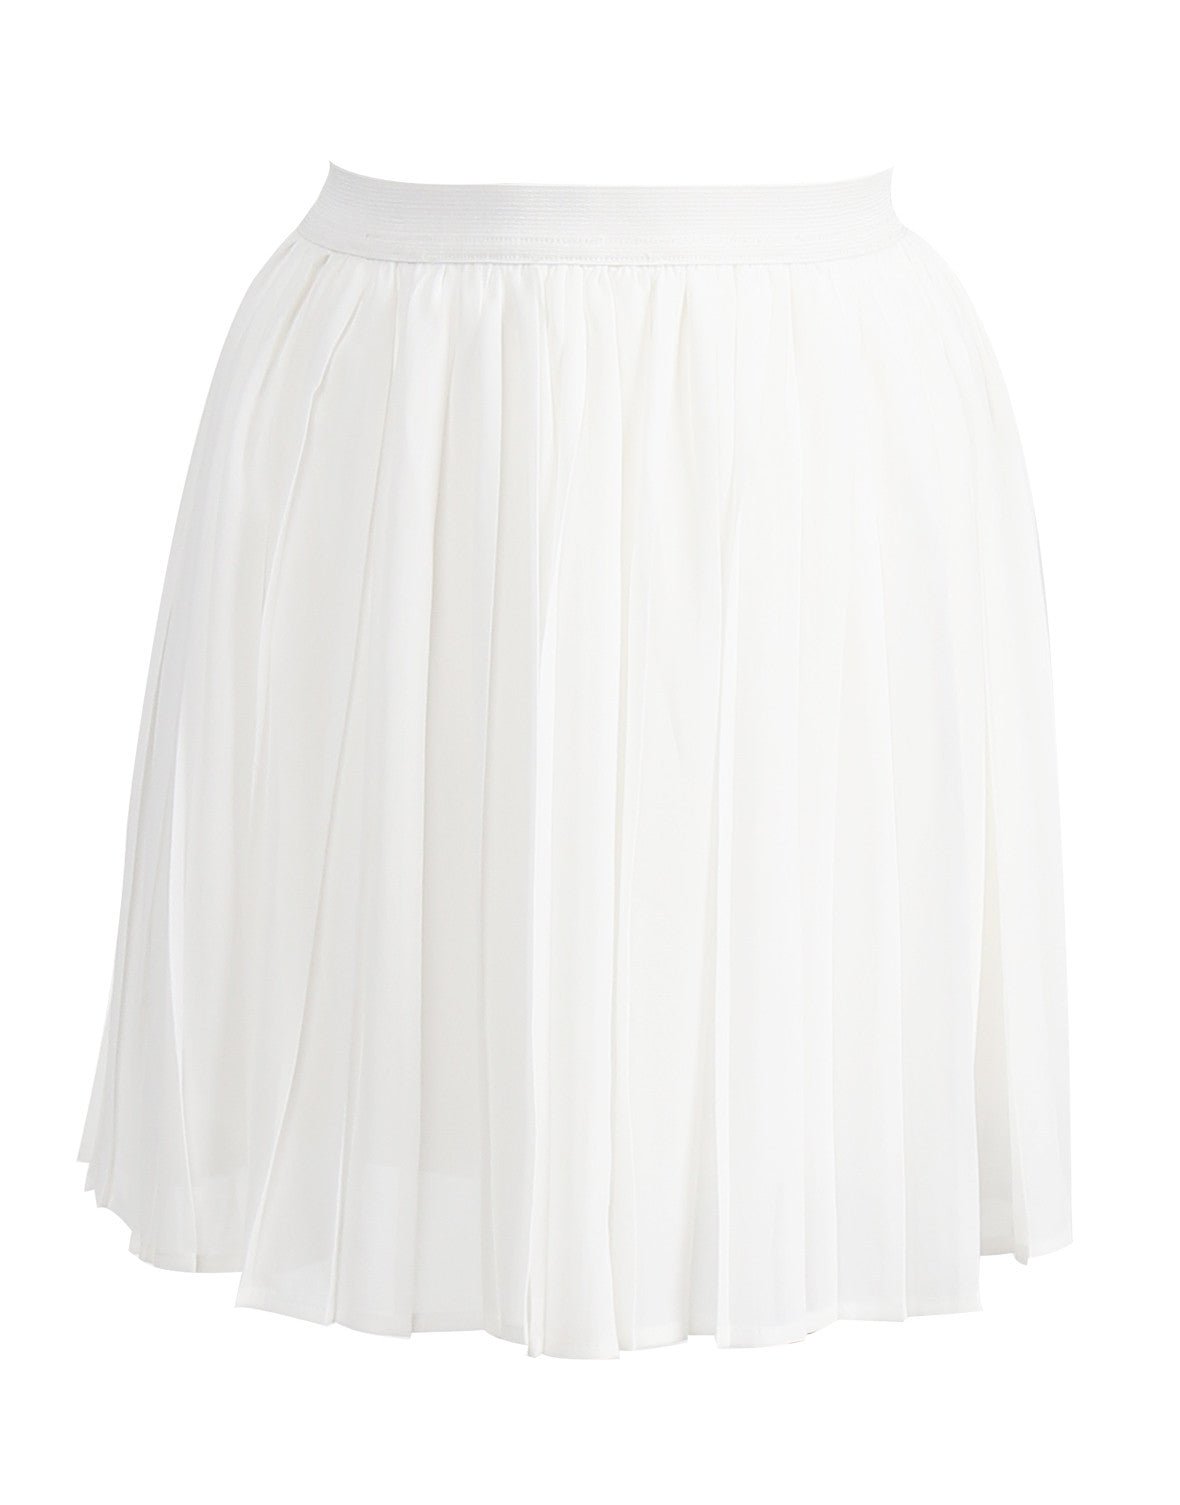 Pleated Flowy Mini Skirt - White - Medium - 2020AVE